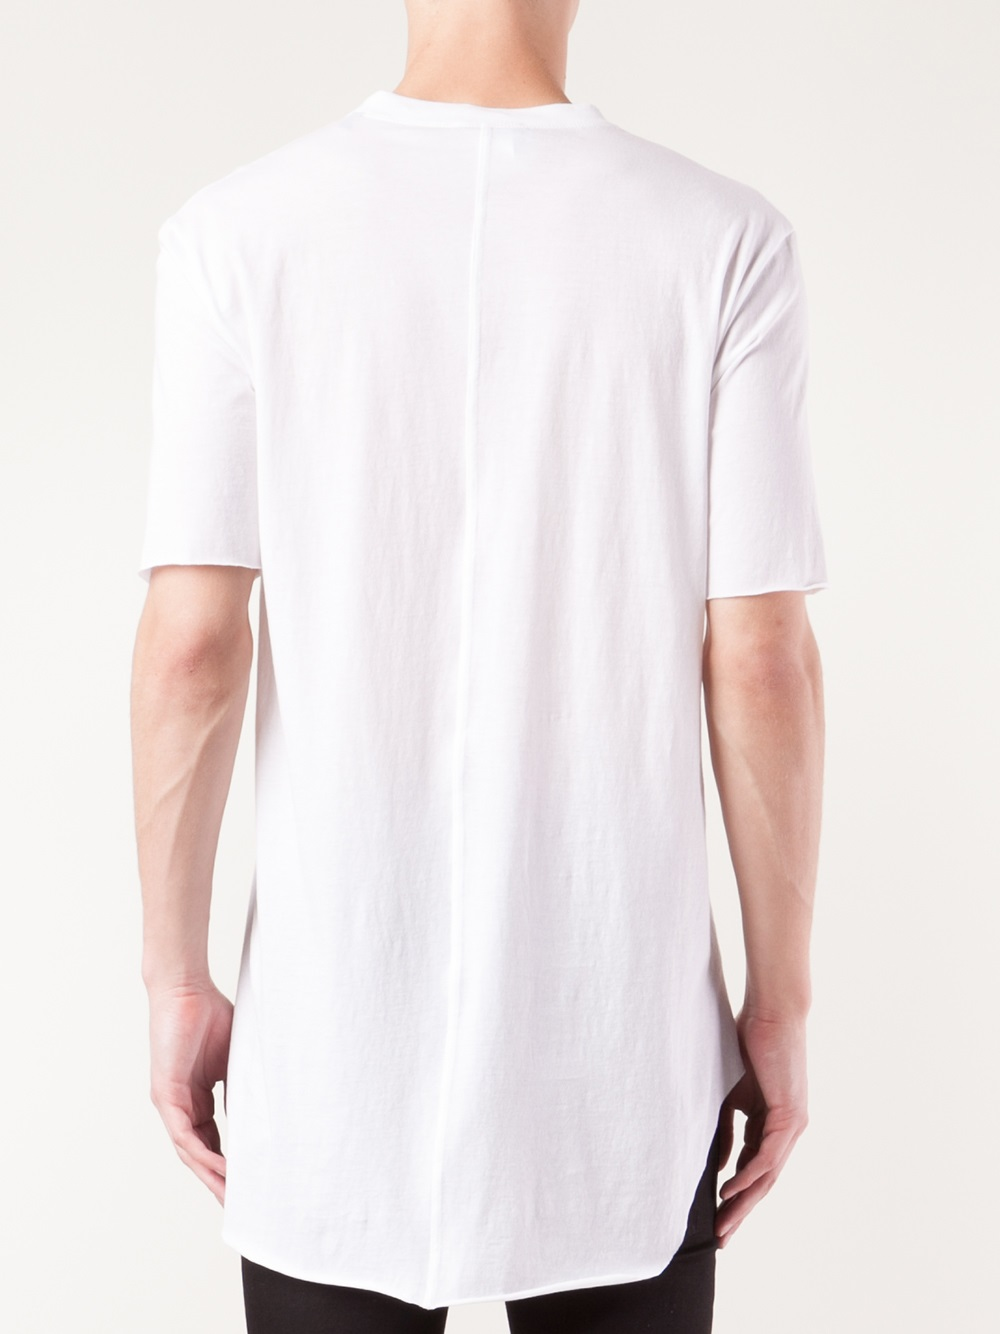 Plain White 100% Cotton T-shirt Tall Tee Wholesale